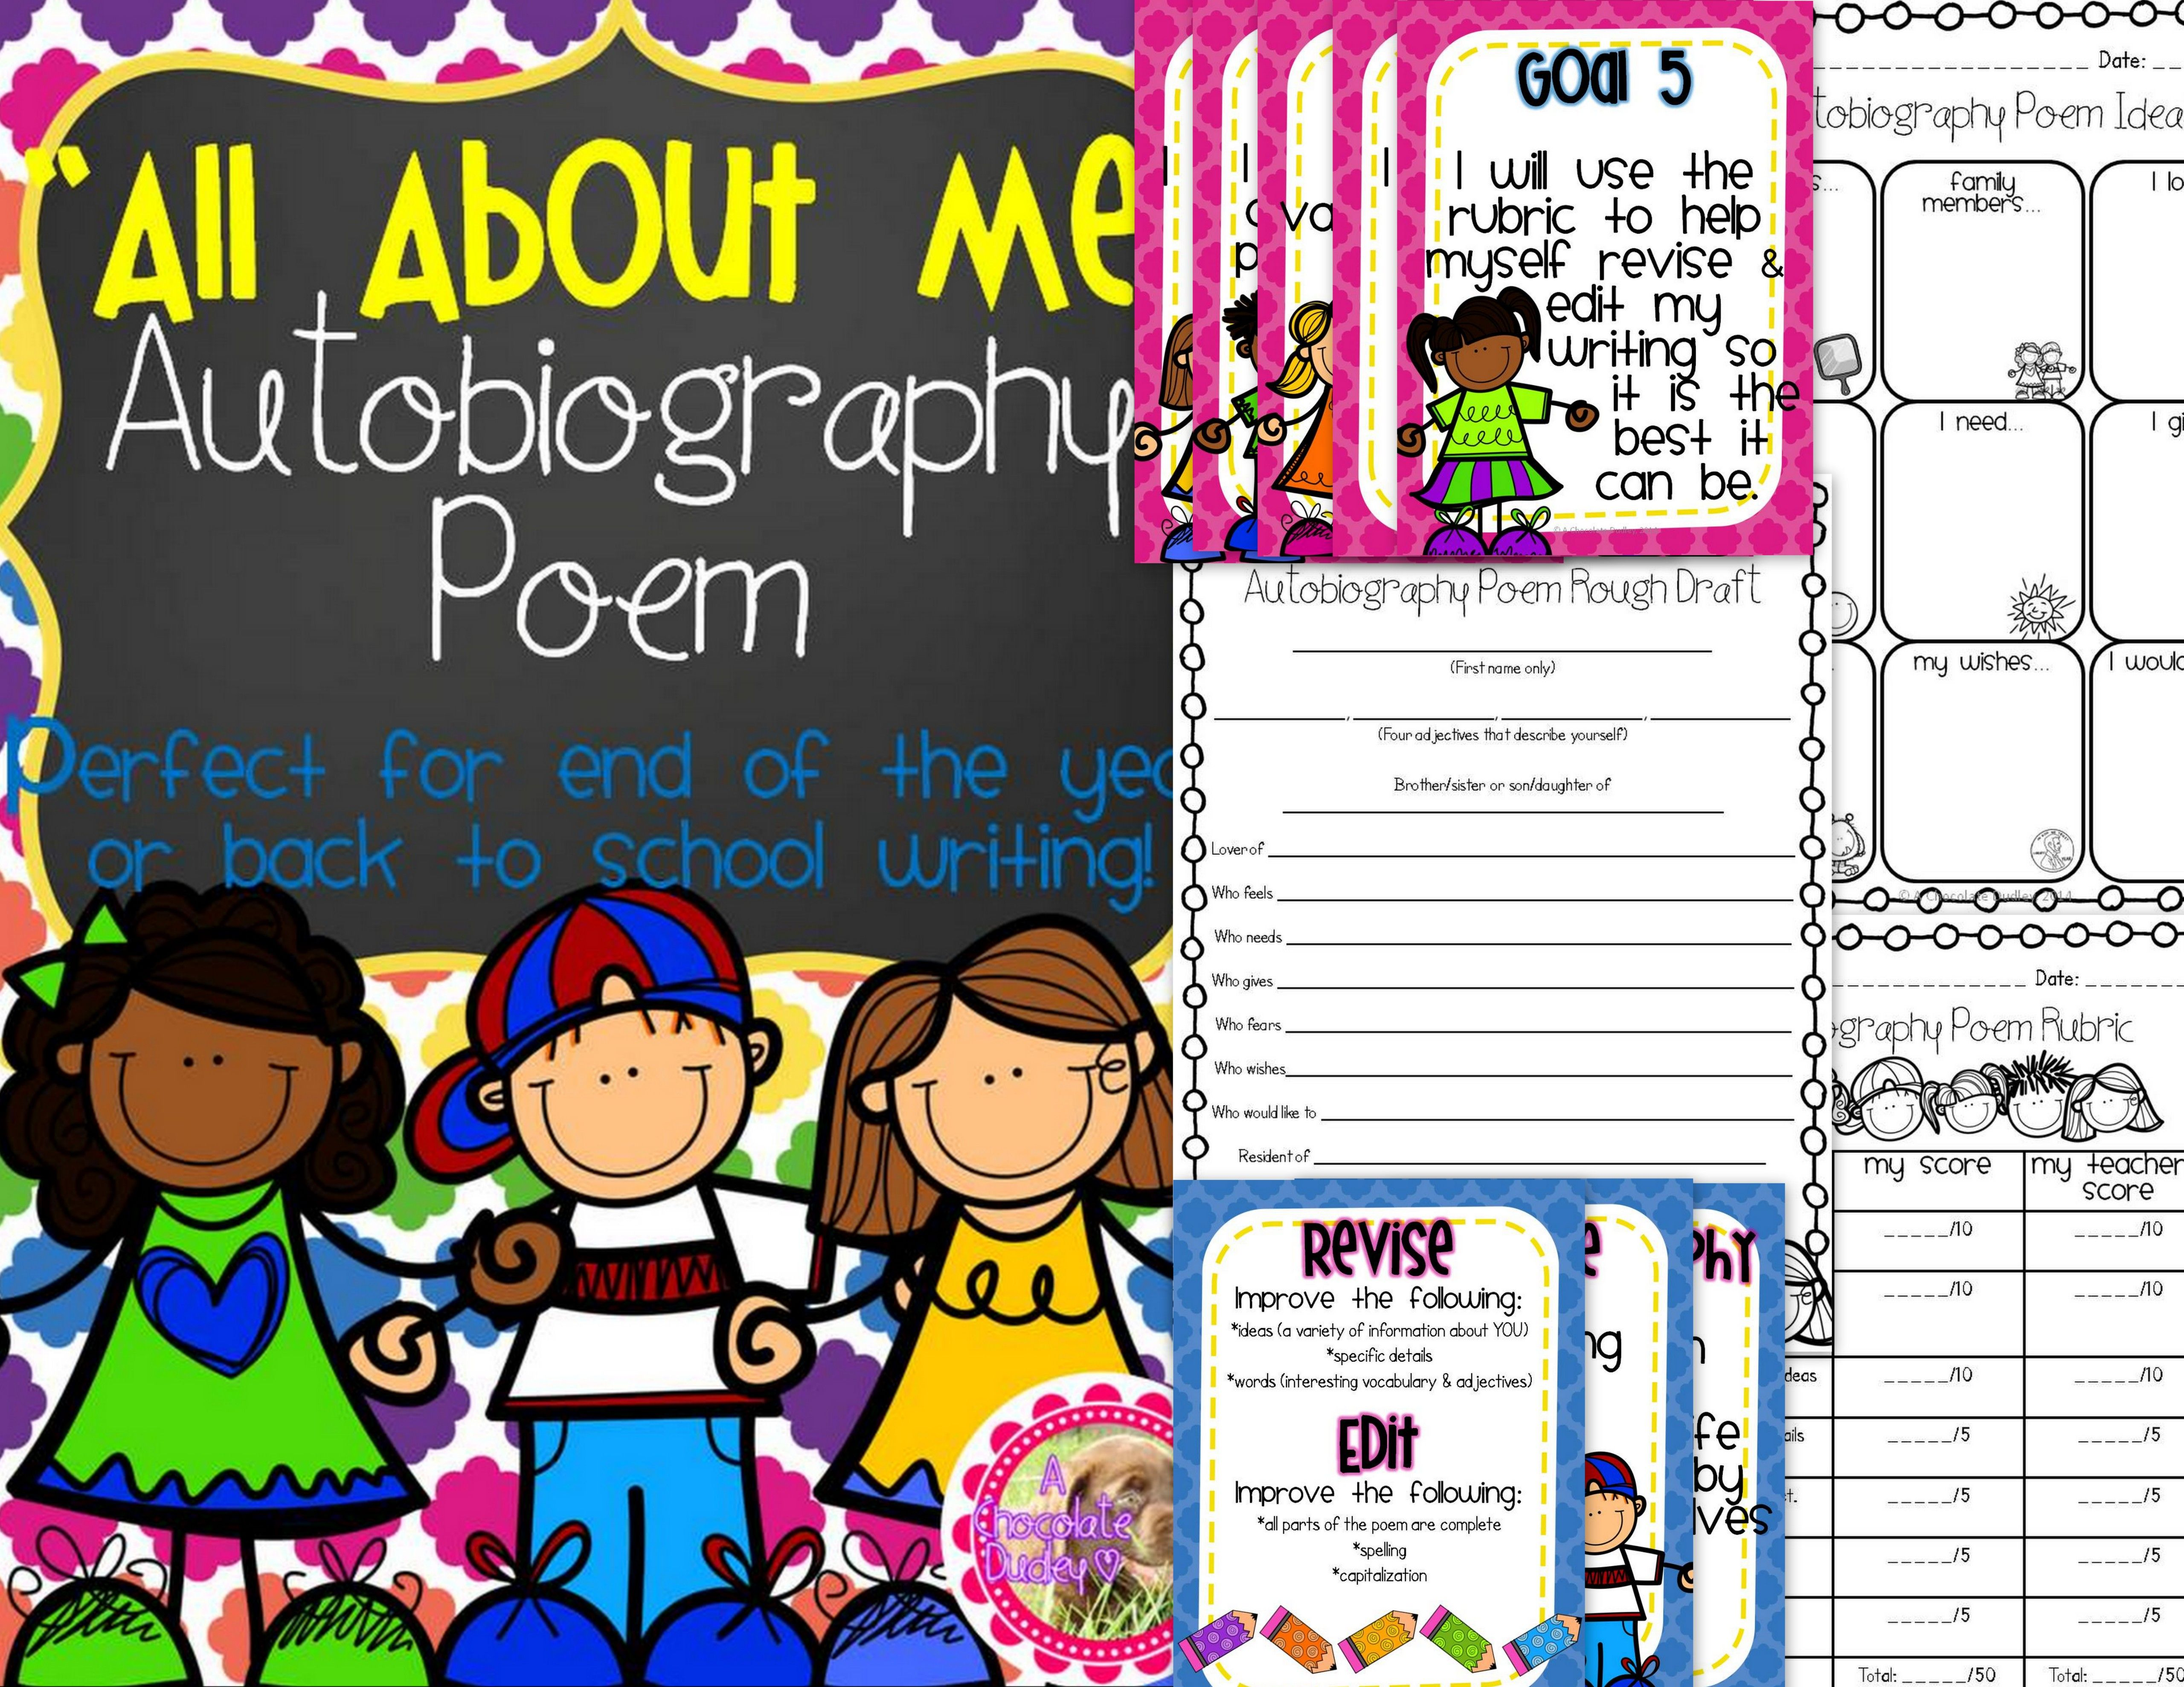 All About Me Autobiography Poem End Of The Year Or Back To School Writing